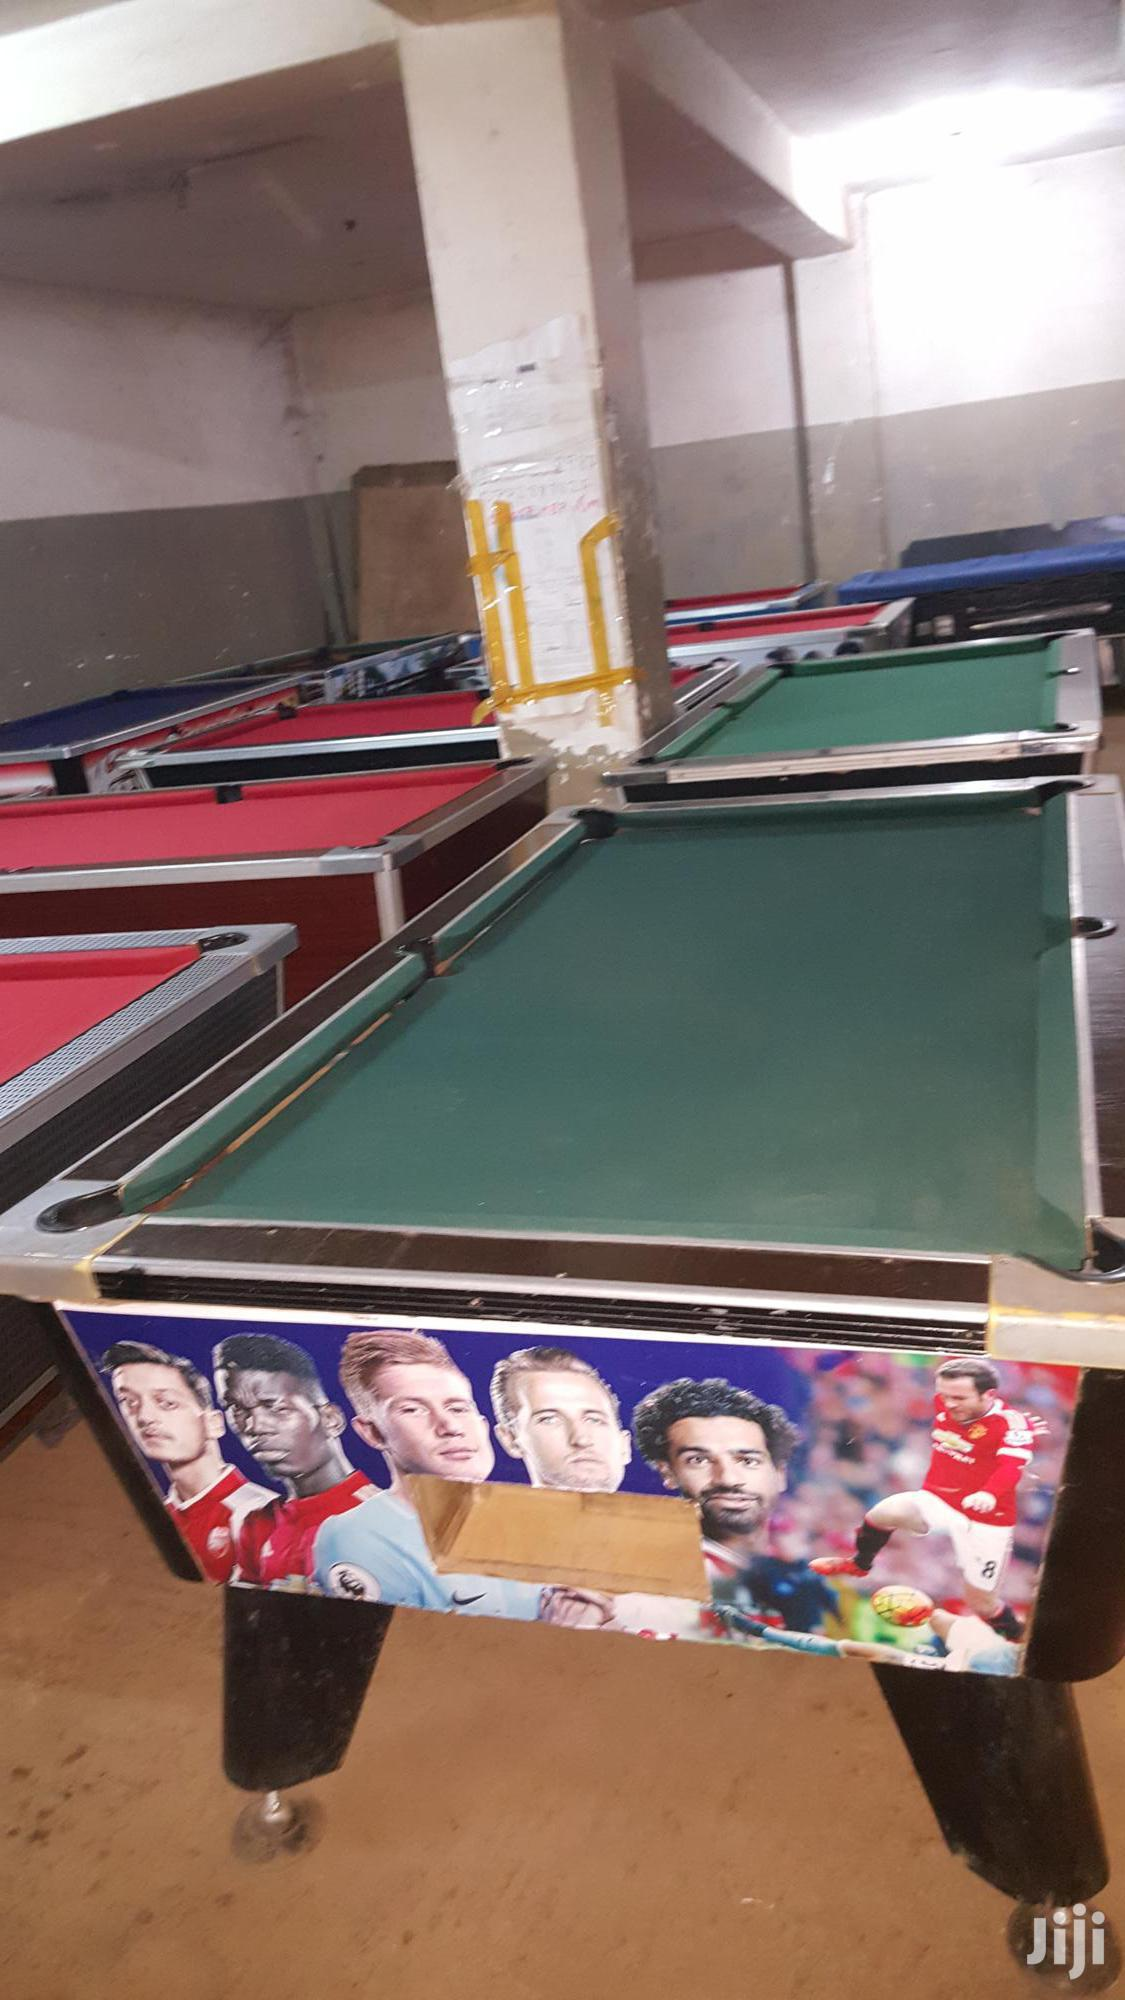 Pool Tables | Sports Equipment for sale in Kampala, Central Region, Uganda